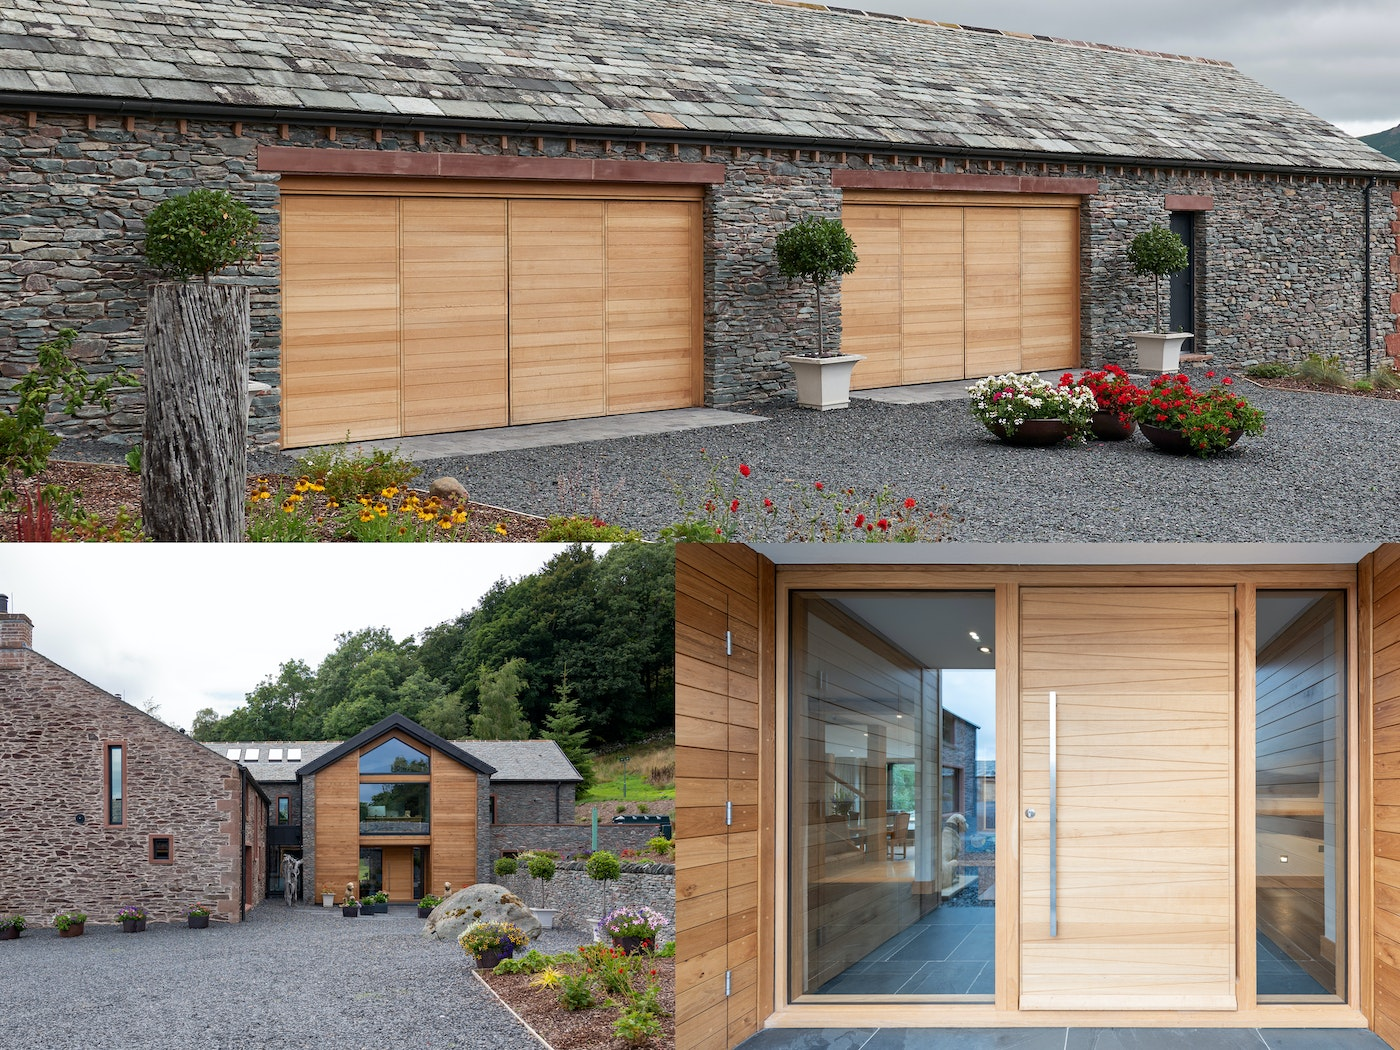 A simple design difference but the same finish help the front & garage doors work well together in this farmhouse renovation